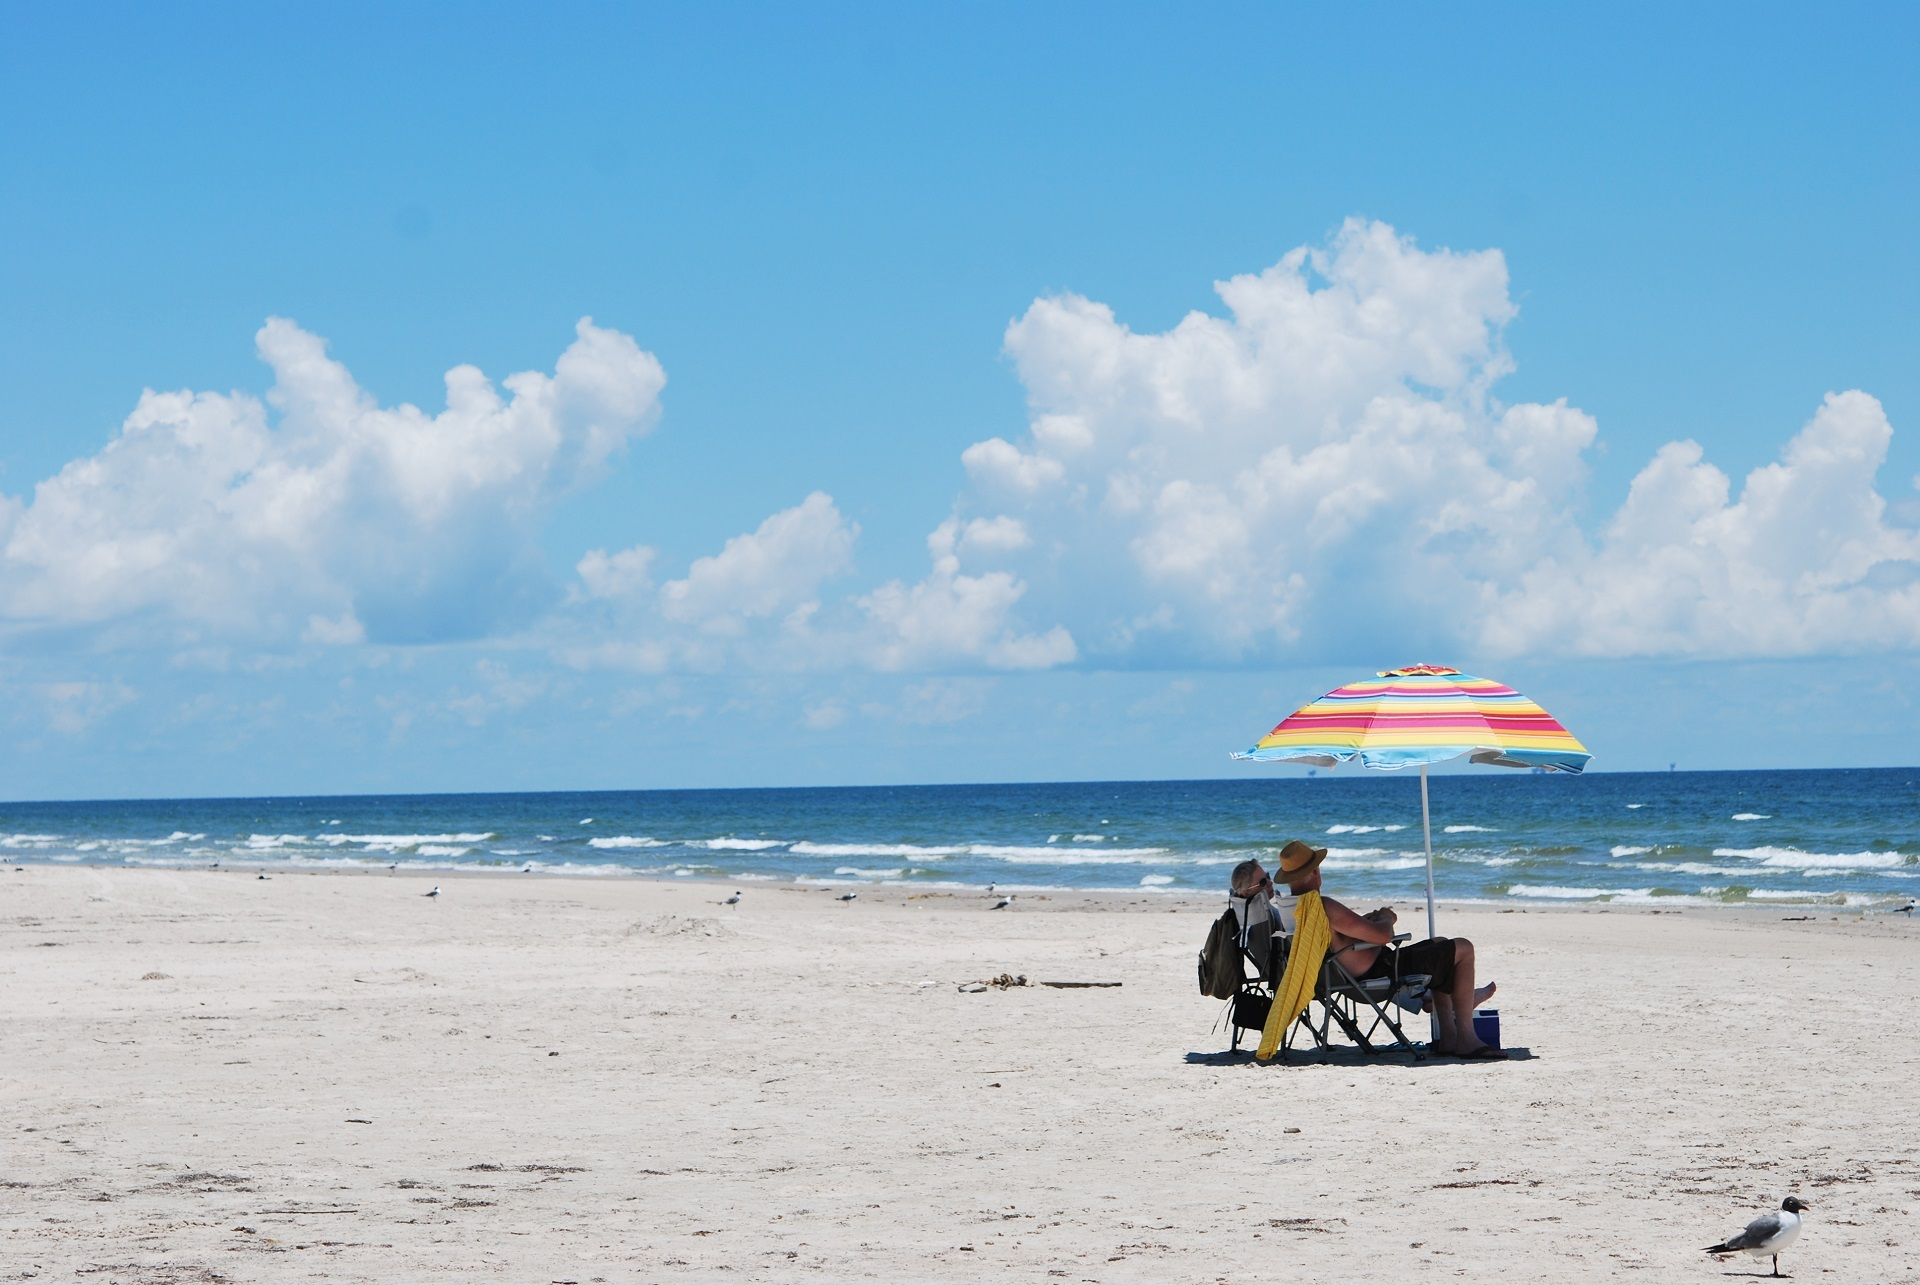 Sunbath on the Seashore, Activity, Blue, Human, Nature, HQ Photo